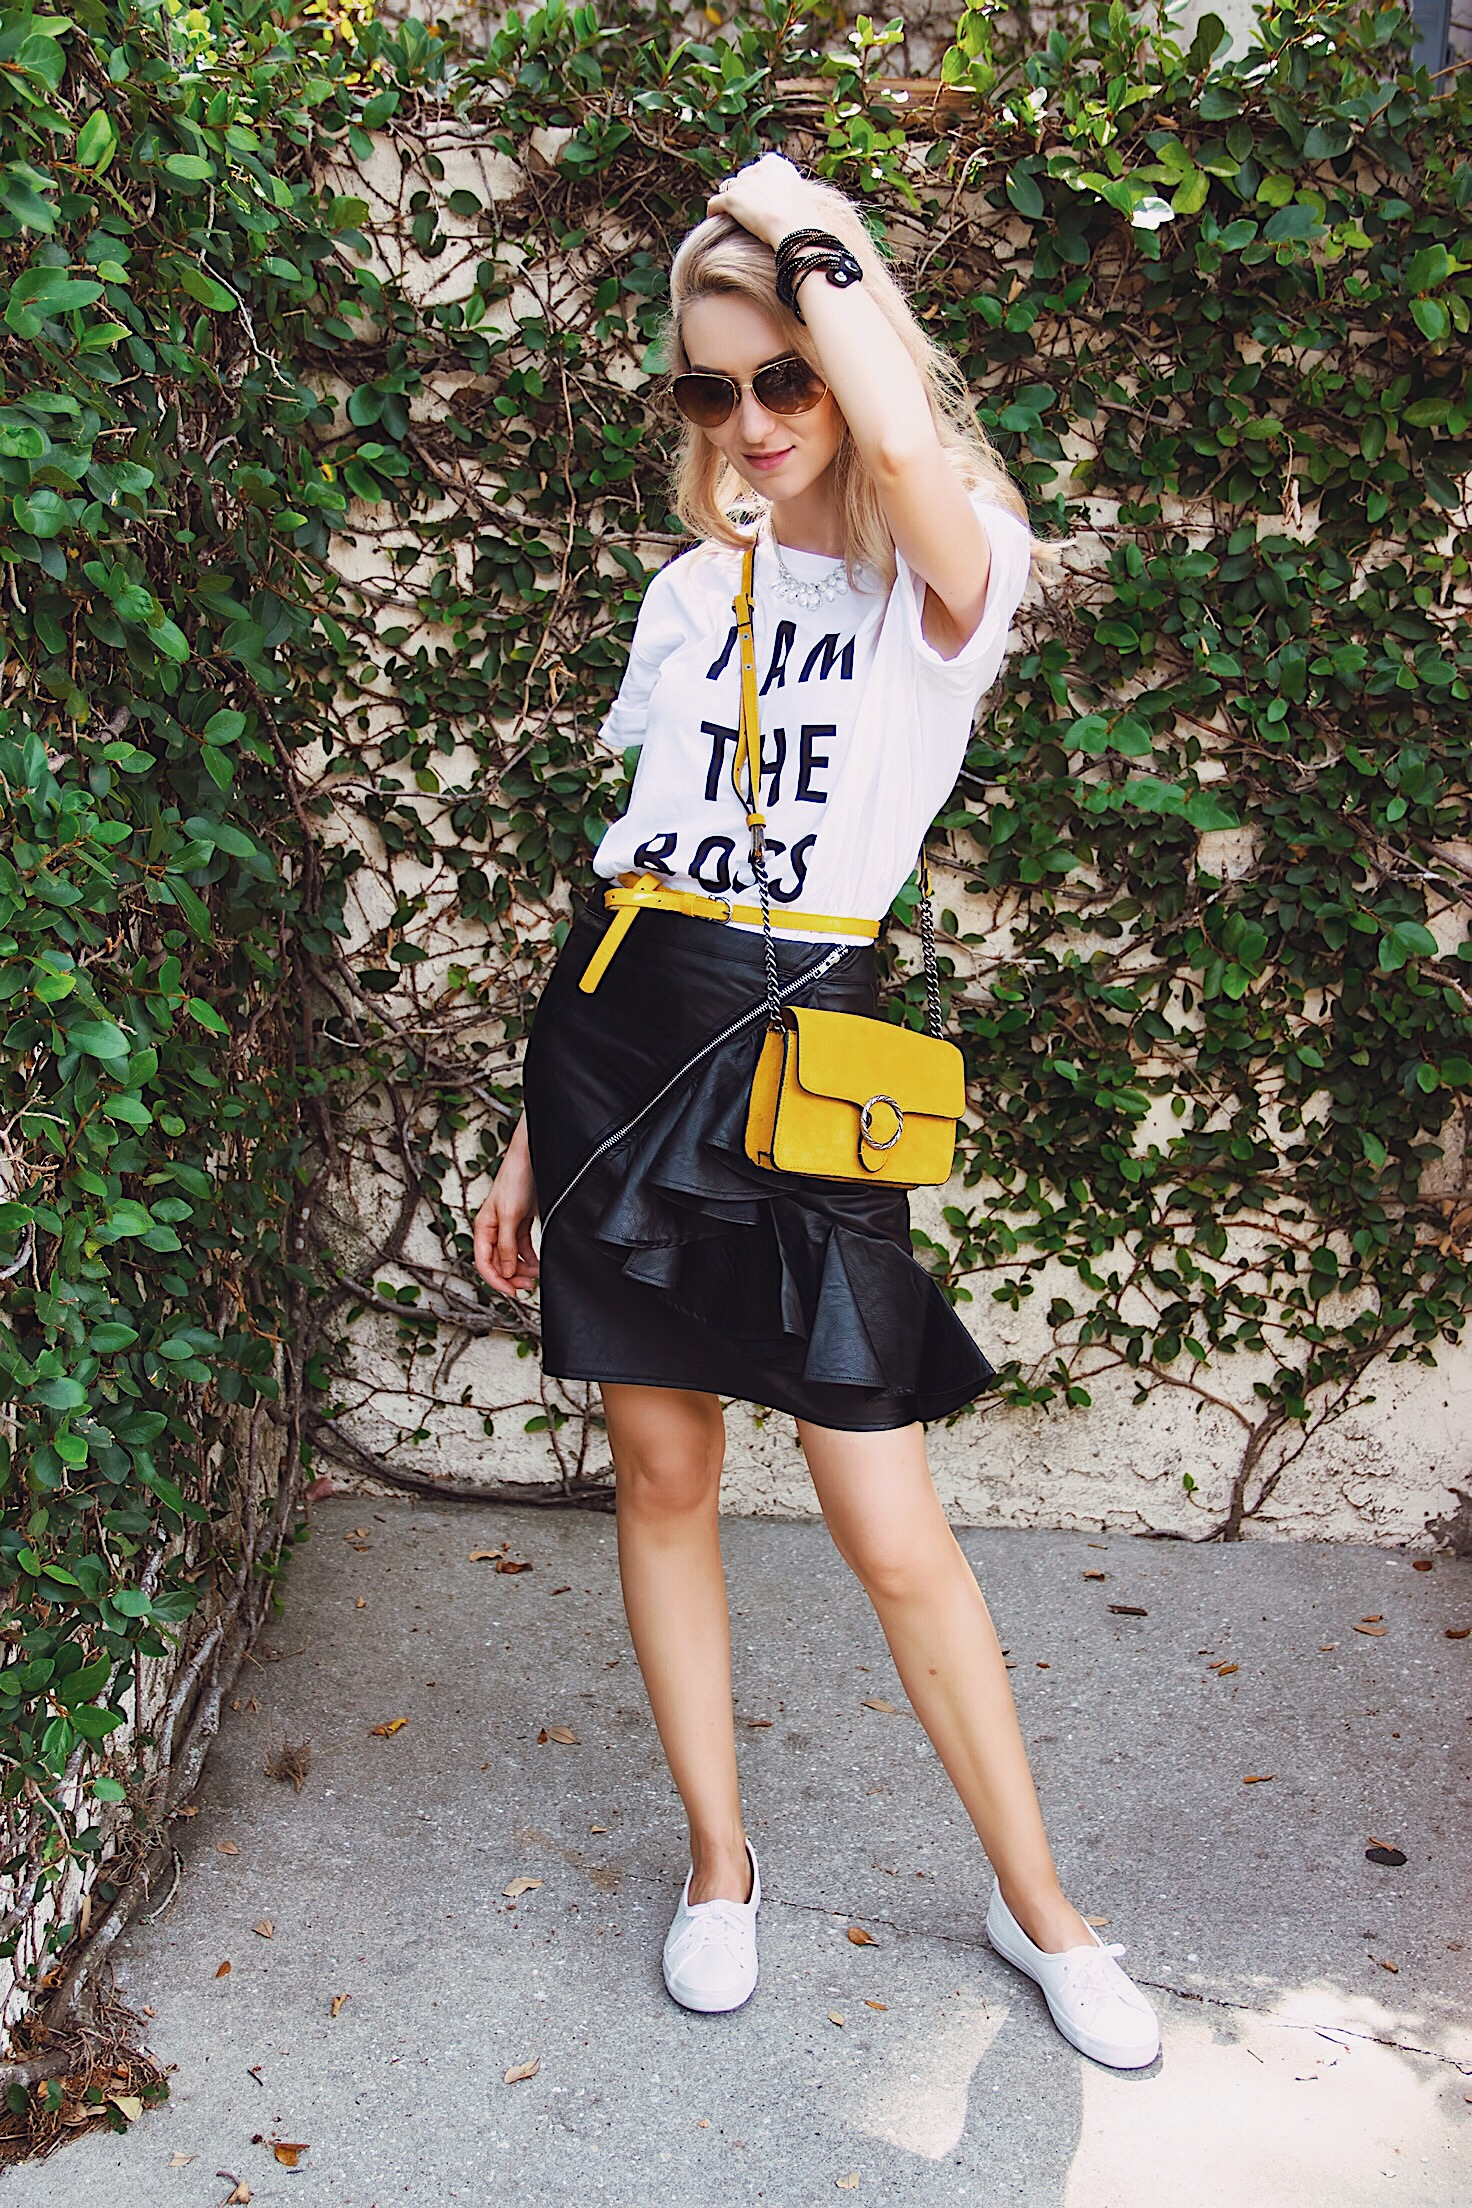 I Am The Boss Graphic Tee Faux Leather Ruffle Skirt Suede Mustard Bag White Lacoste Sneakers